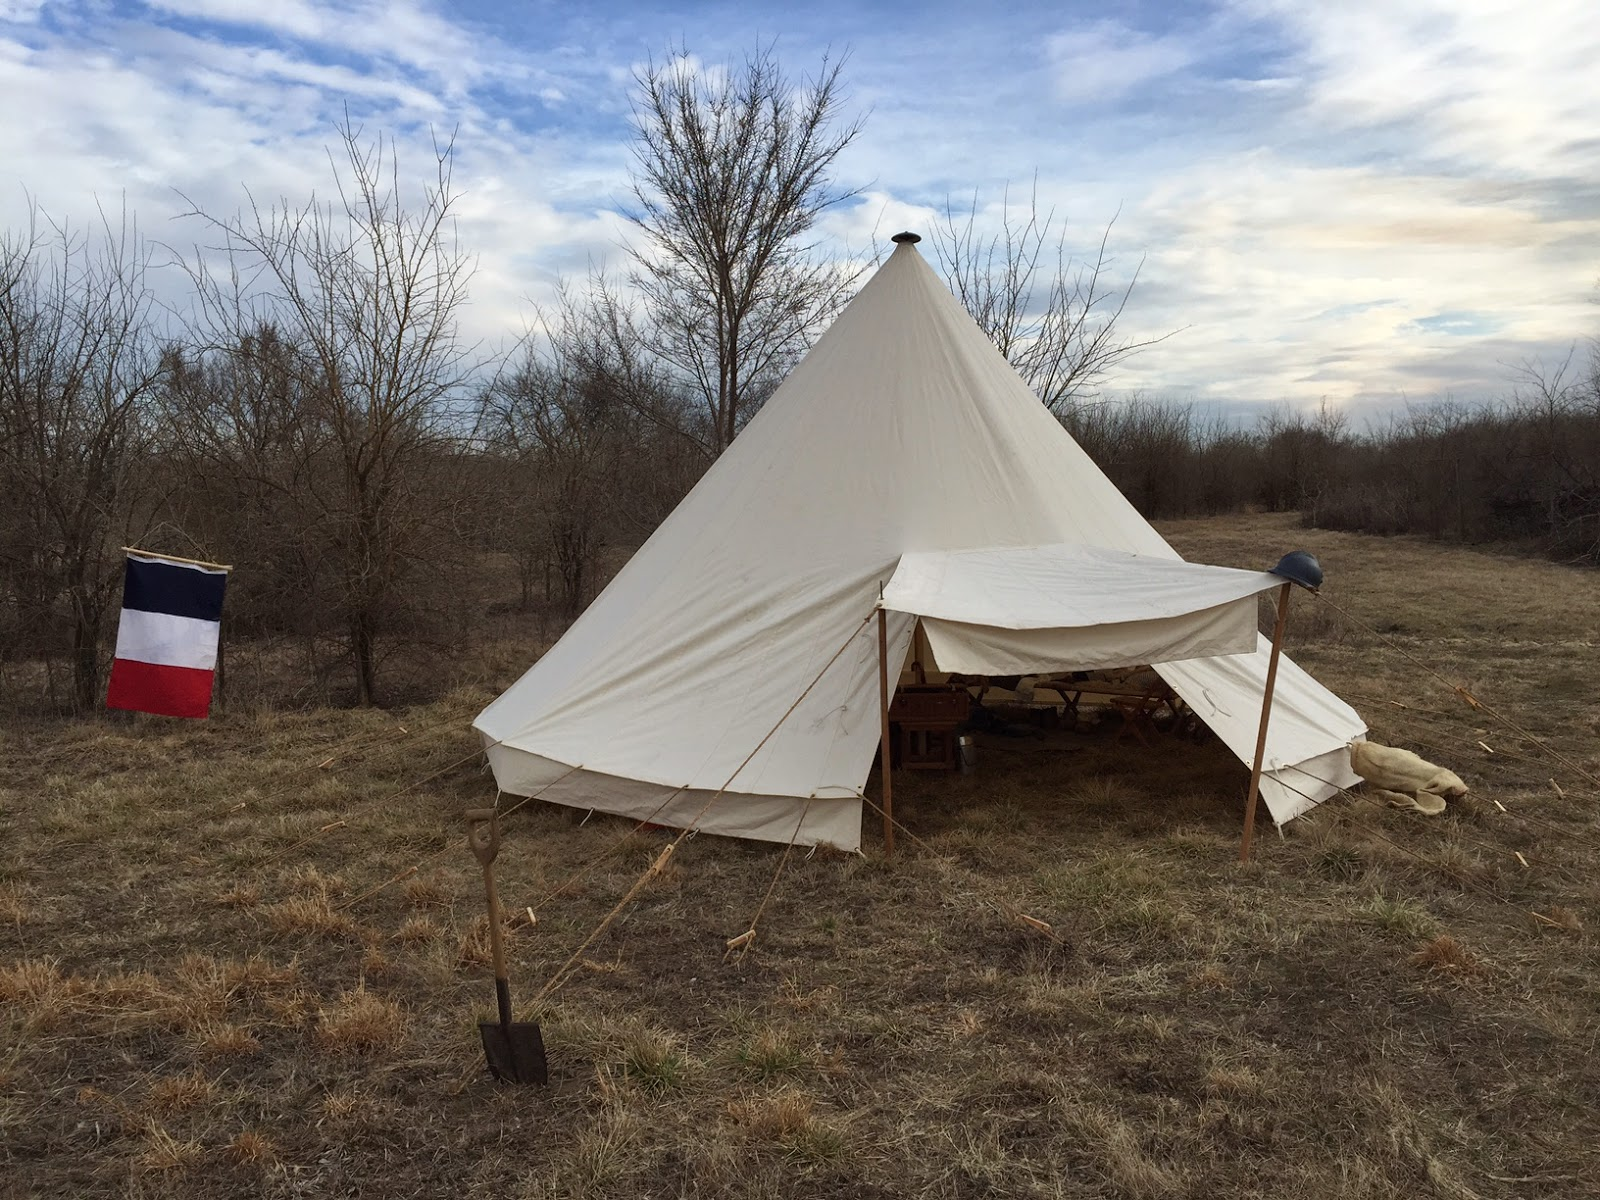 Austro-Hungarian WWI Tent u2013 $900. Wooden pole and stake kit u2013 $225 & Armbruster Manufacturing Co. | World War One Tent Pricing